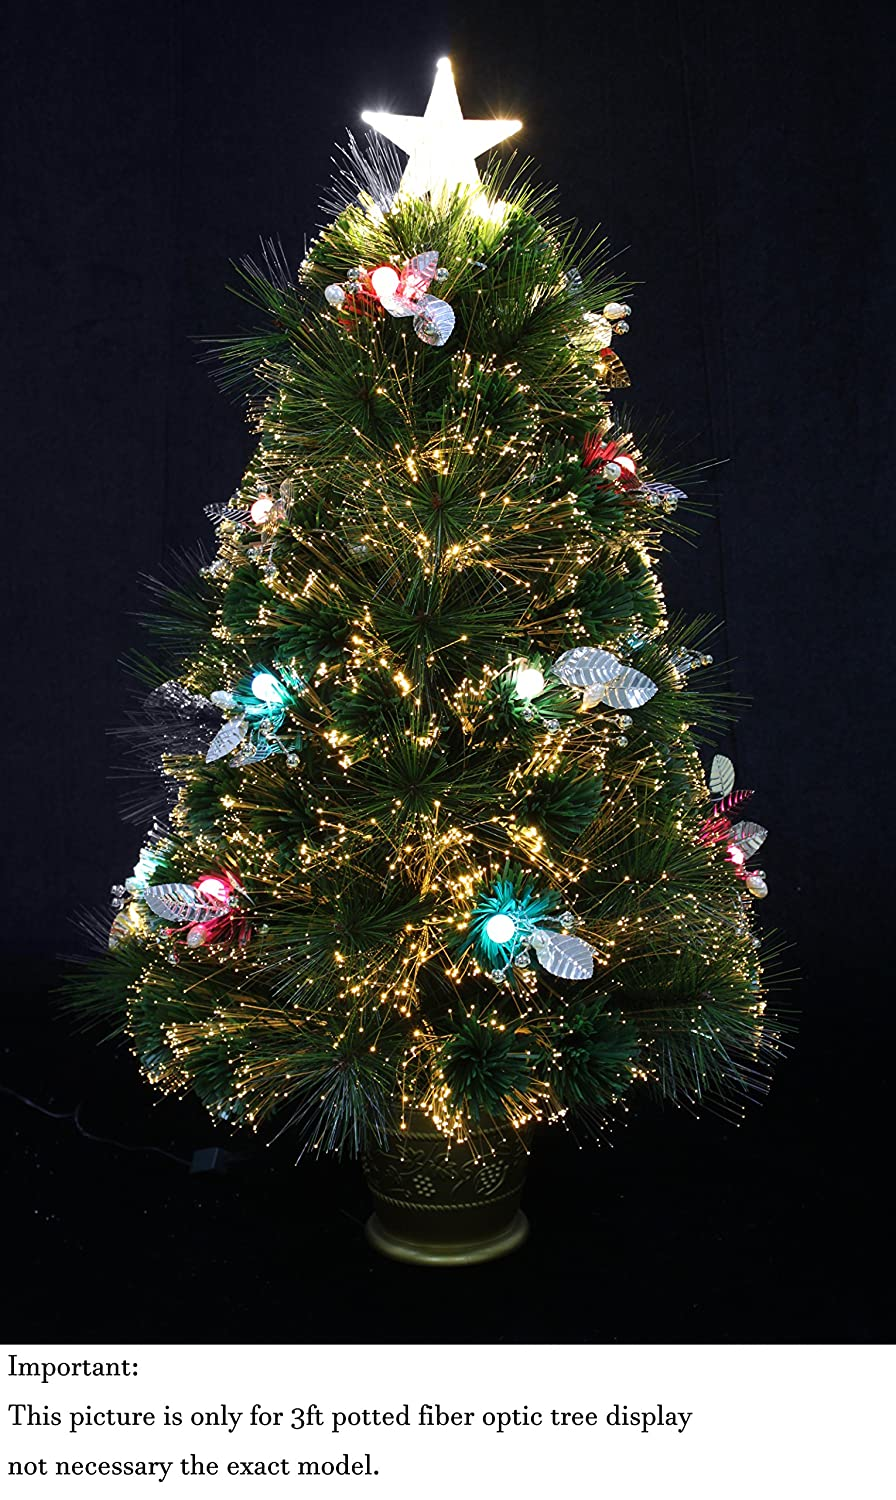 Amazon.com: Snowy White Pine Pre-lit Flocked Christmas tree/Flocked ...